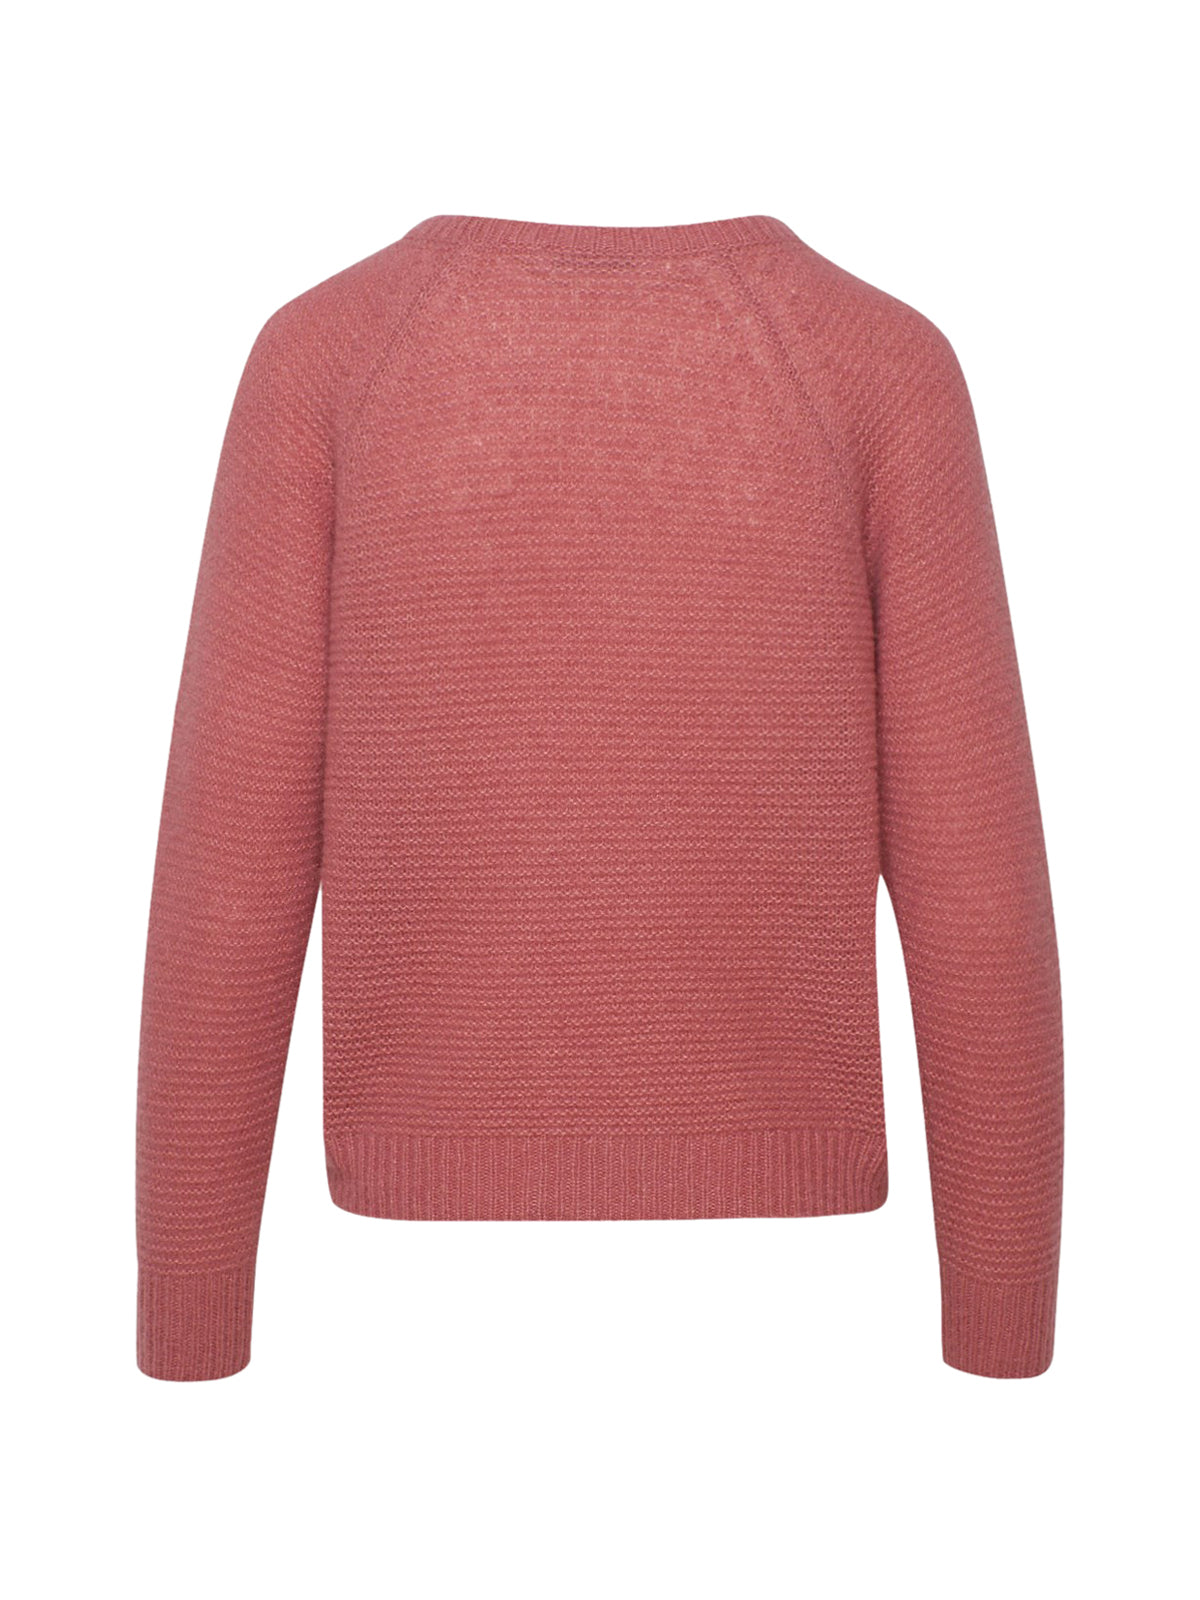 Cashmere and silk knitwear